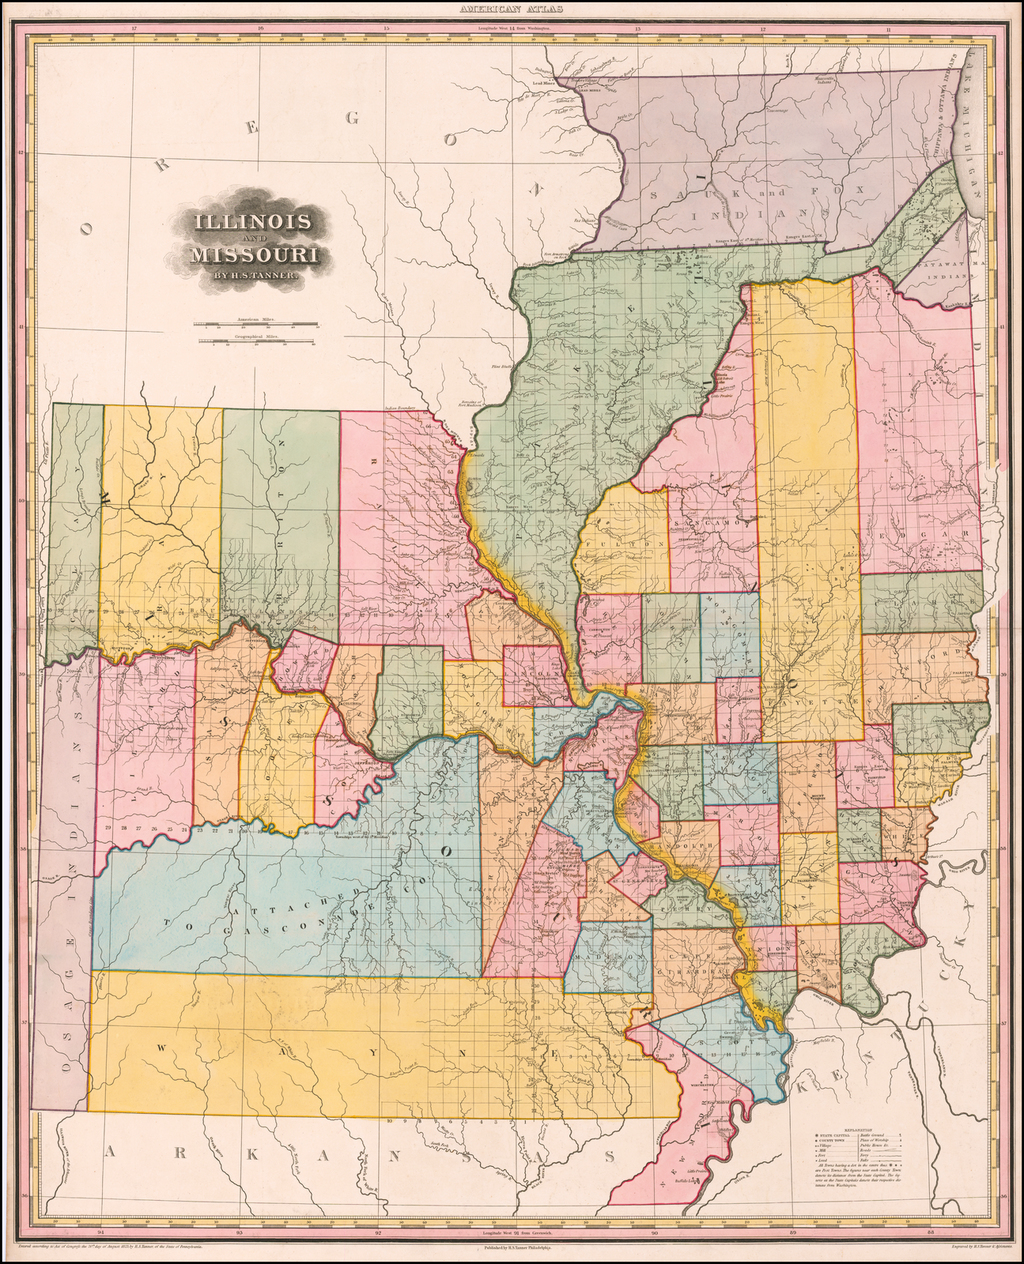 Illinois and Missouri By H.S. Tanner. By Henry Schenk Tanner